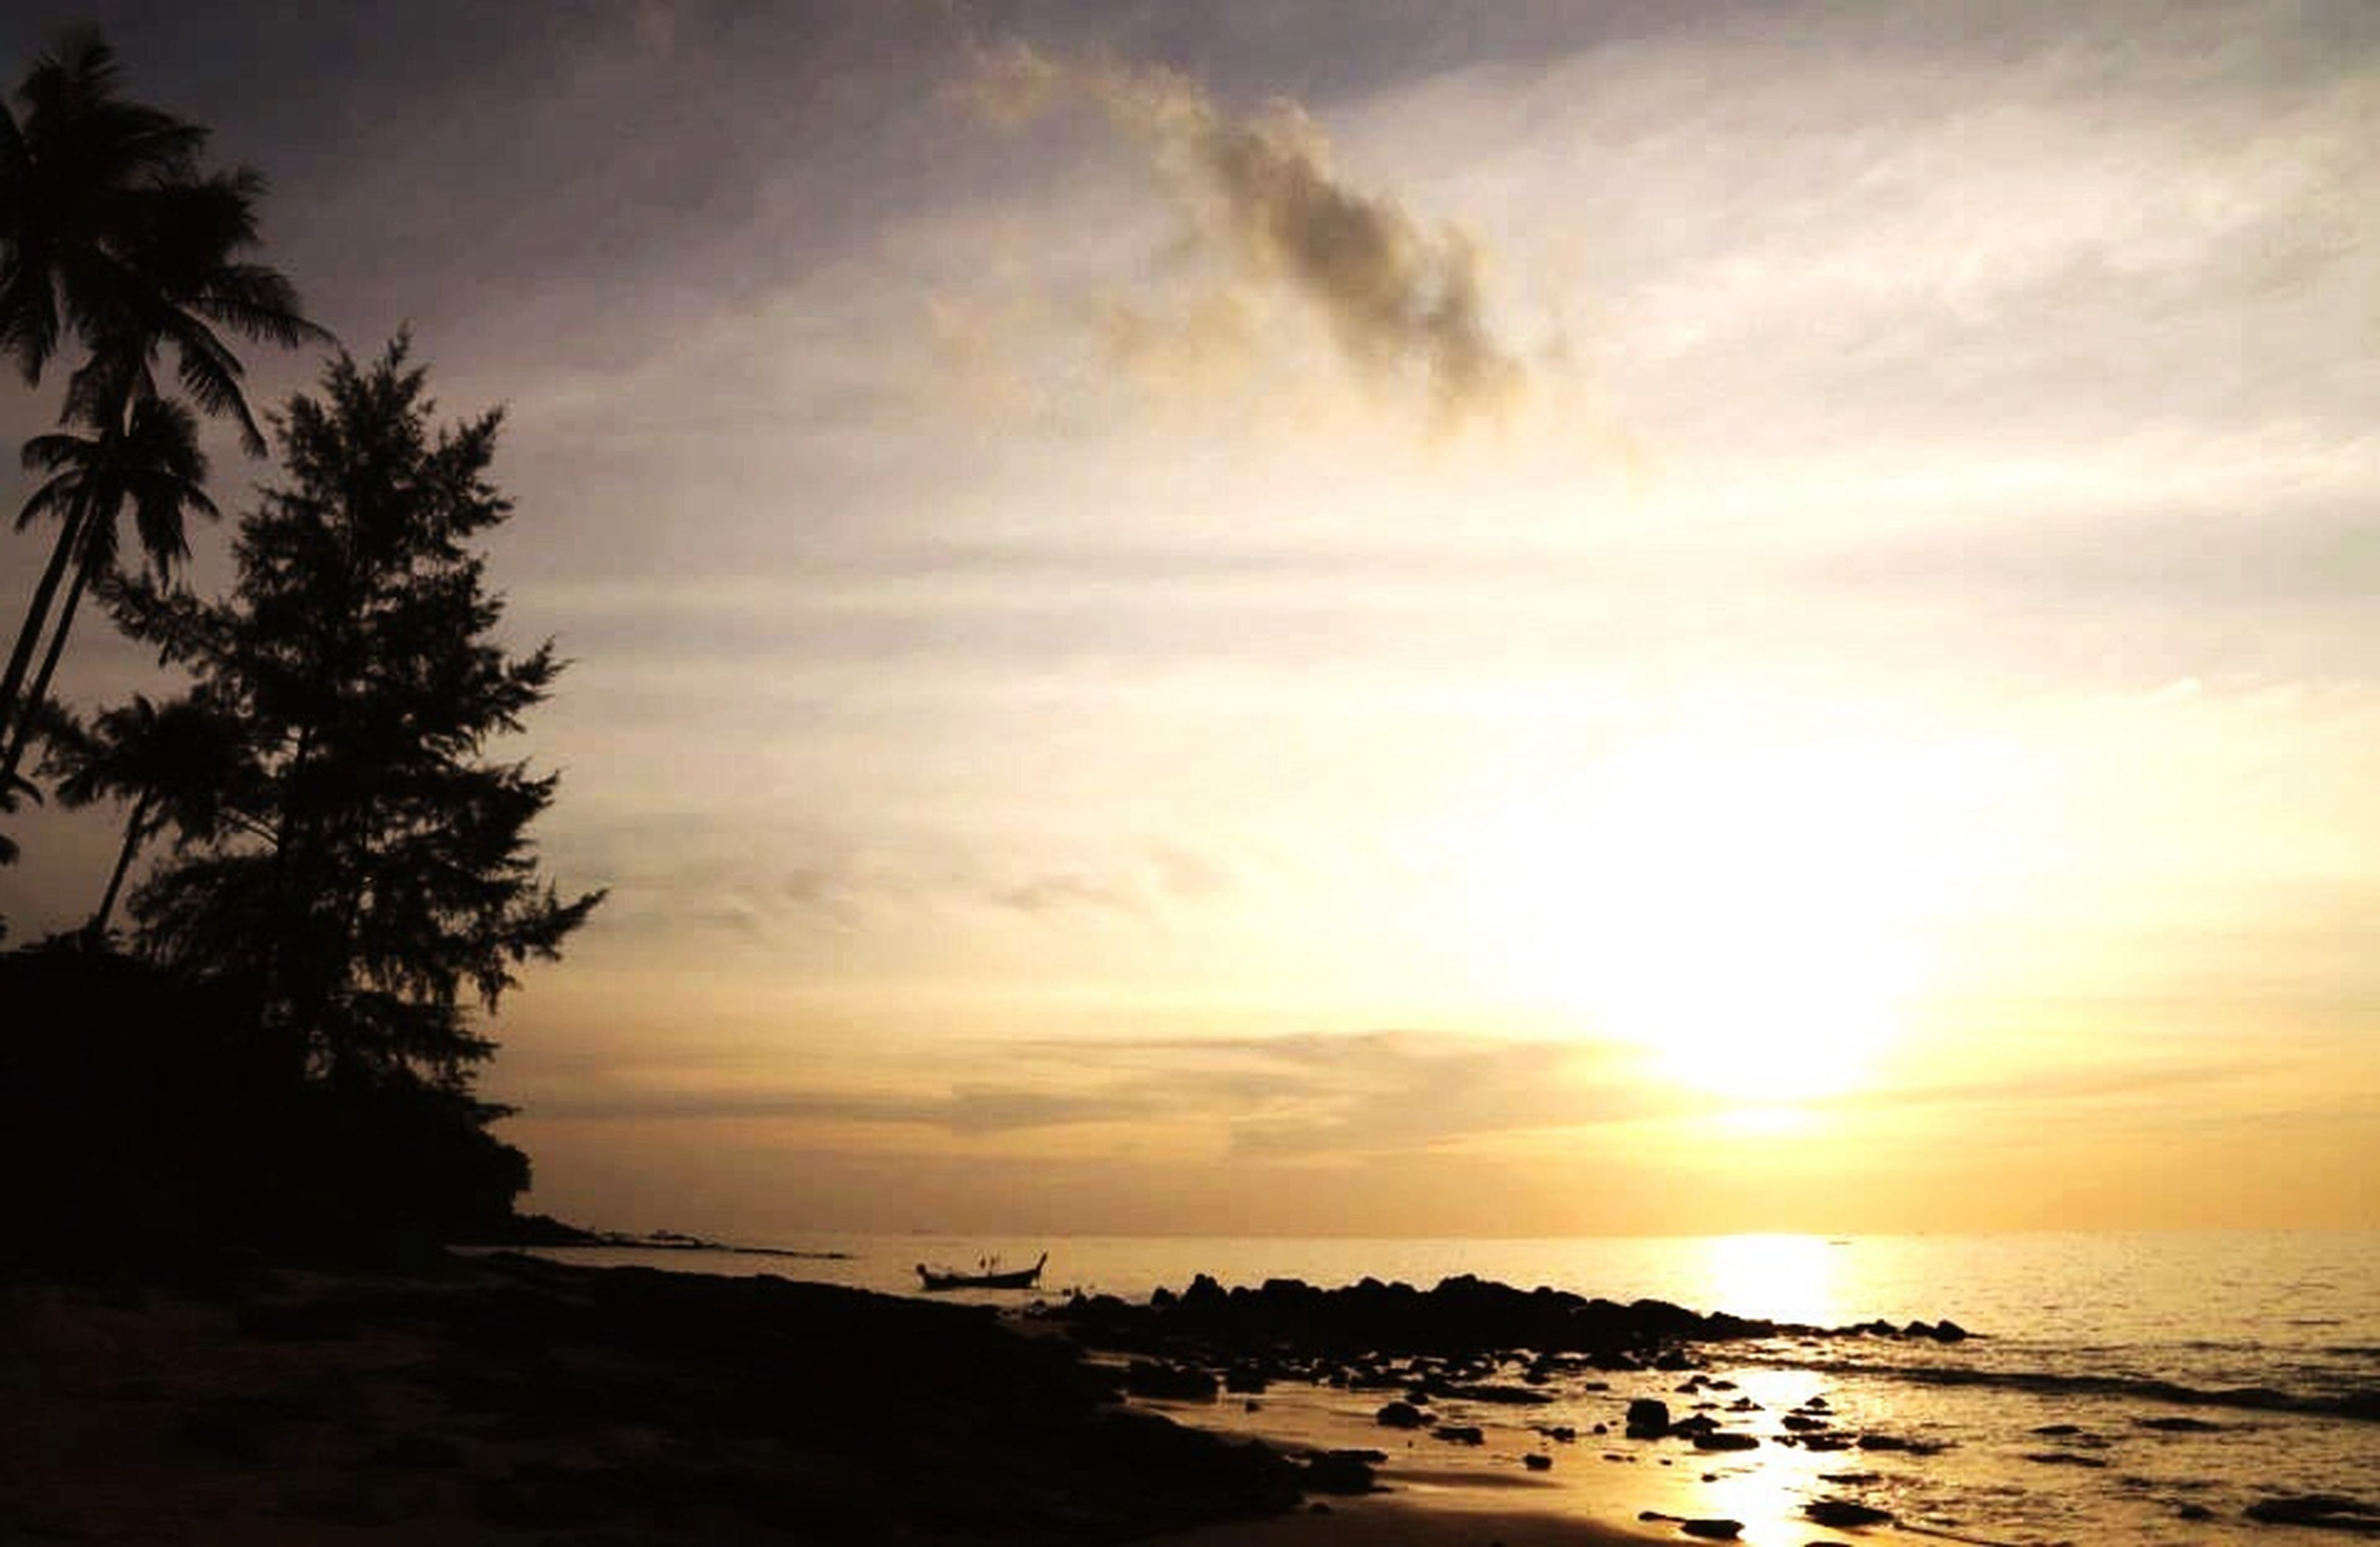 sea, water, horizon over water, sky, sunset, tranquil scene, scenics, beach, tranquility, beauty in nature, nature, cloud - sky, shore, idyllic, tree, palm tree, silhouette, cloud, rock - object, outdoors